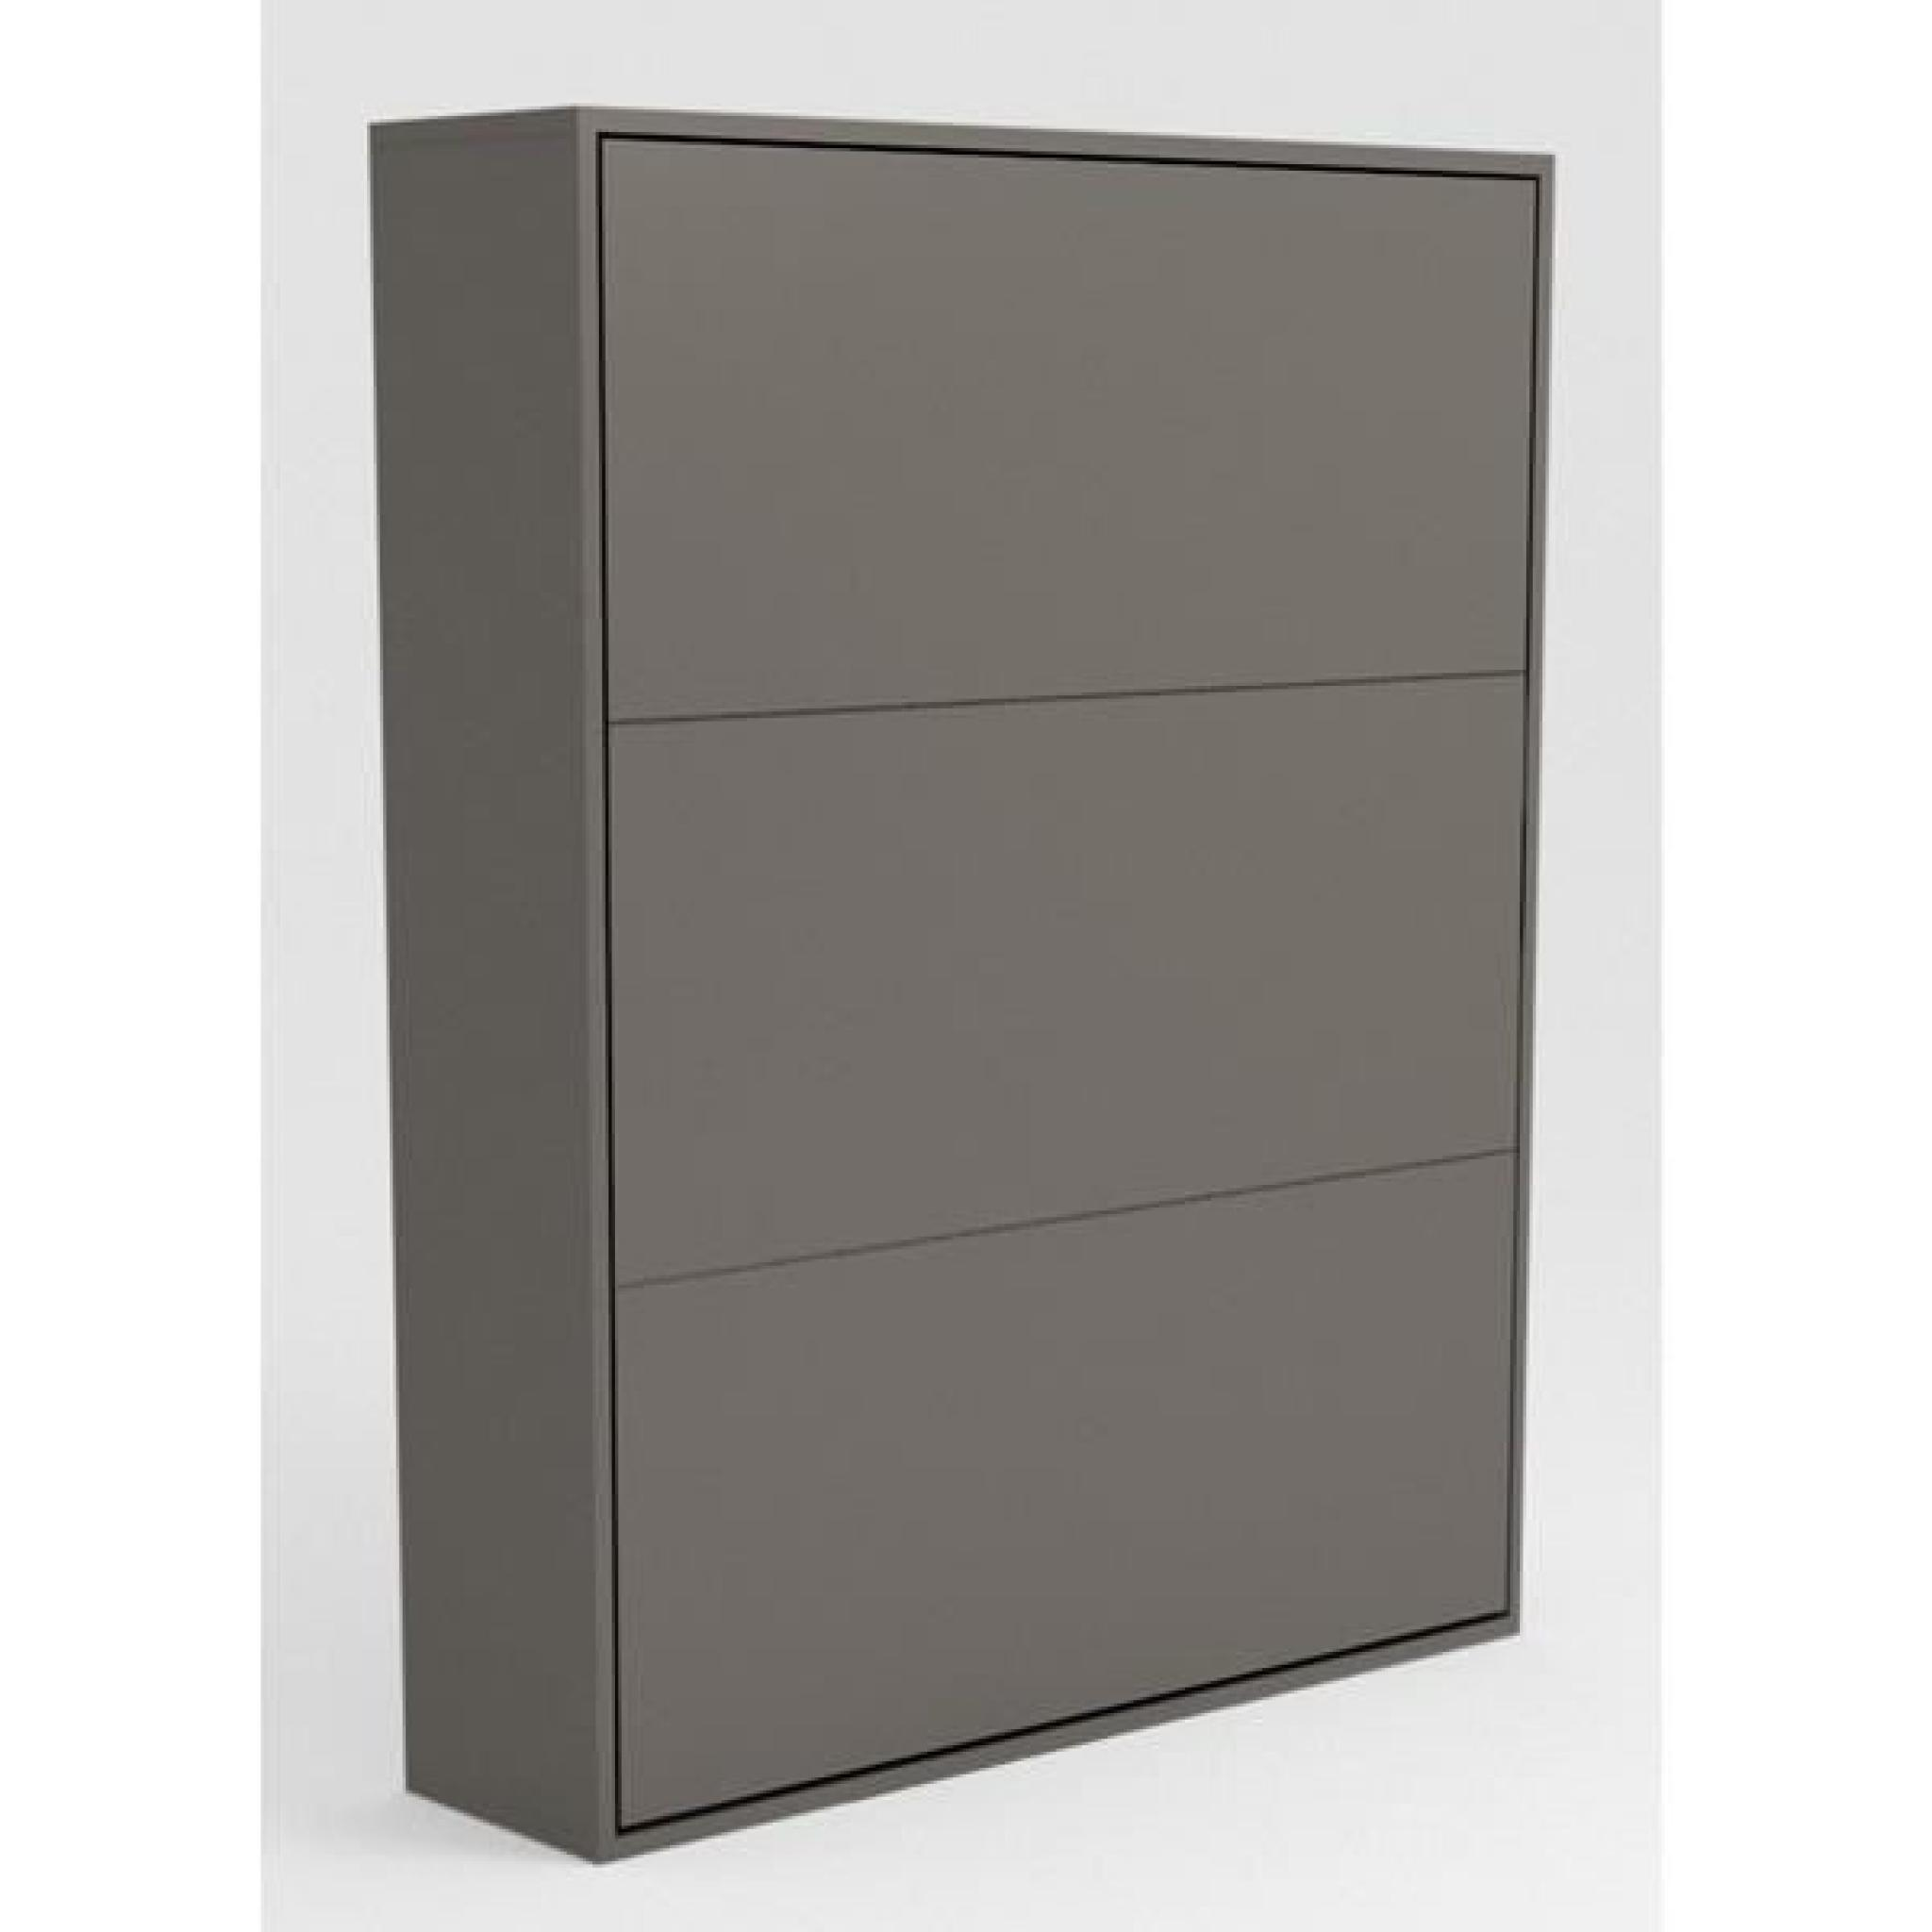 armoire lit escamotable stone 160x200 gris achat vente lit escamotable pas cher couleur et. Black Bedroom Furniture Sets. Home Design Ideas